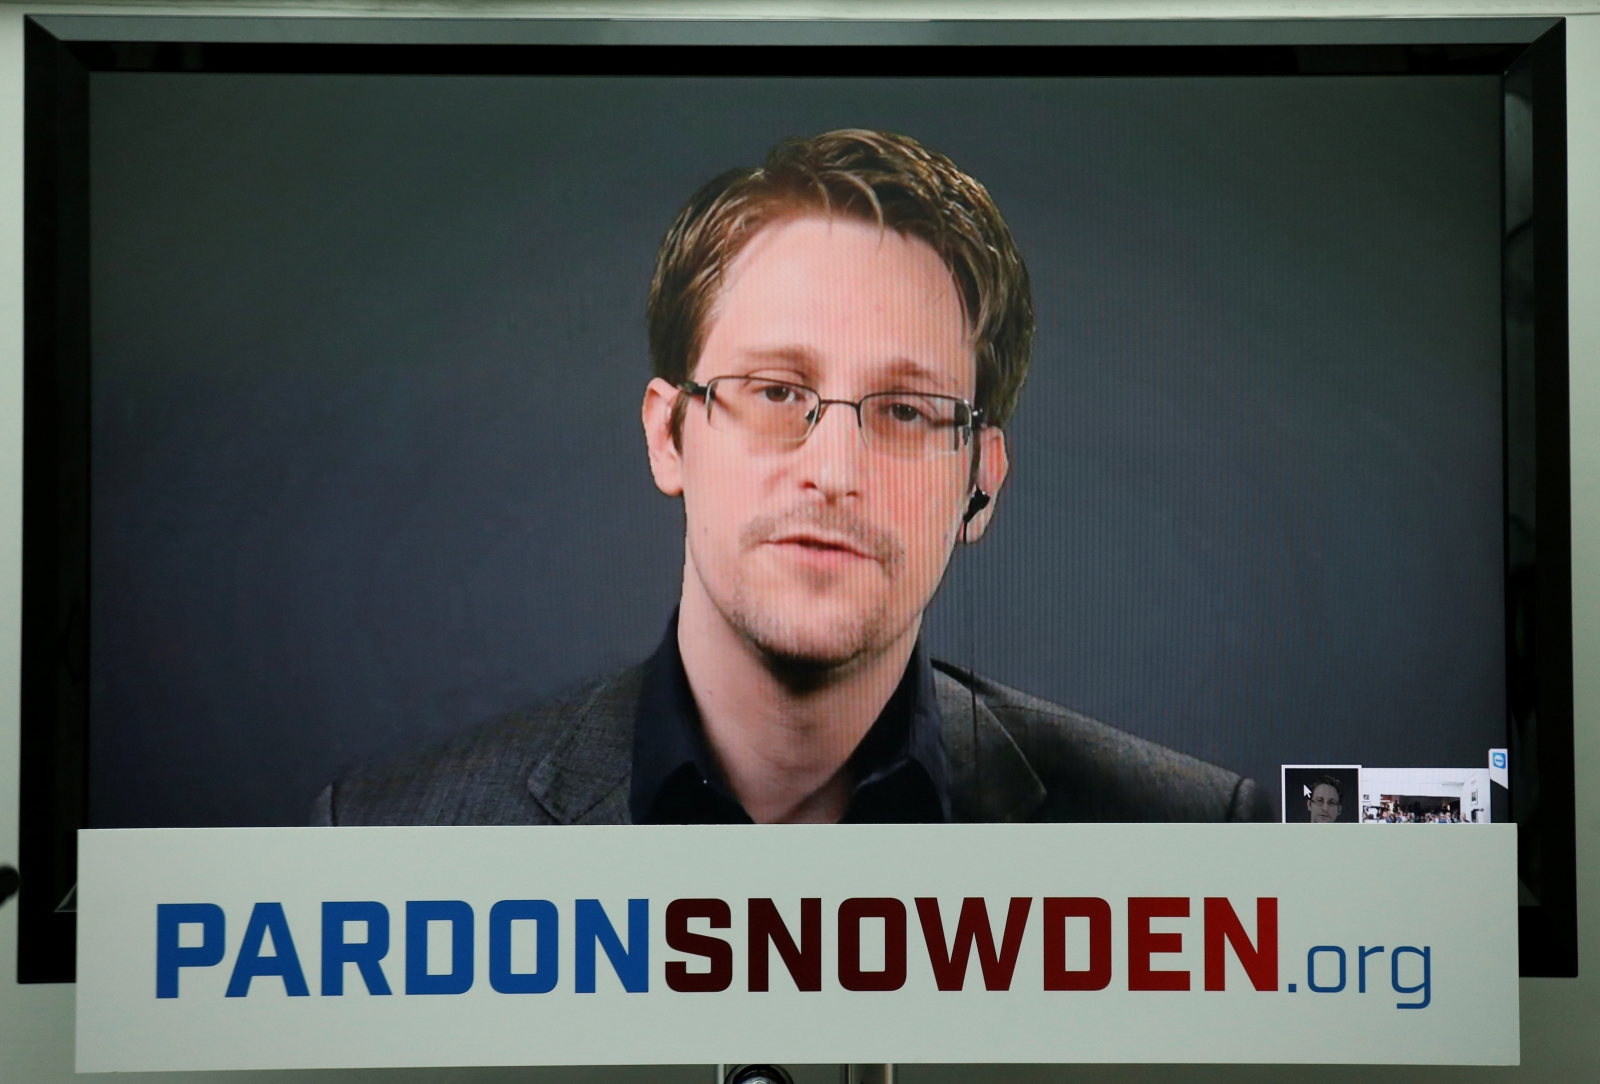 Edward snowden speaks via video link during a news conference in new